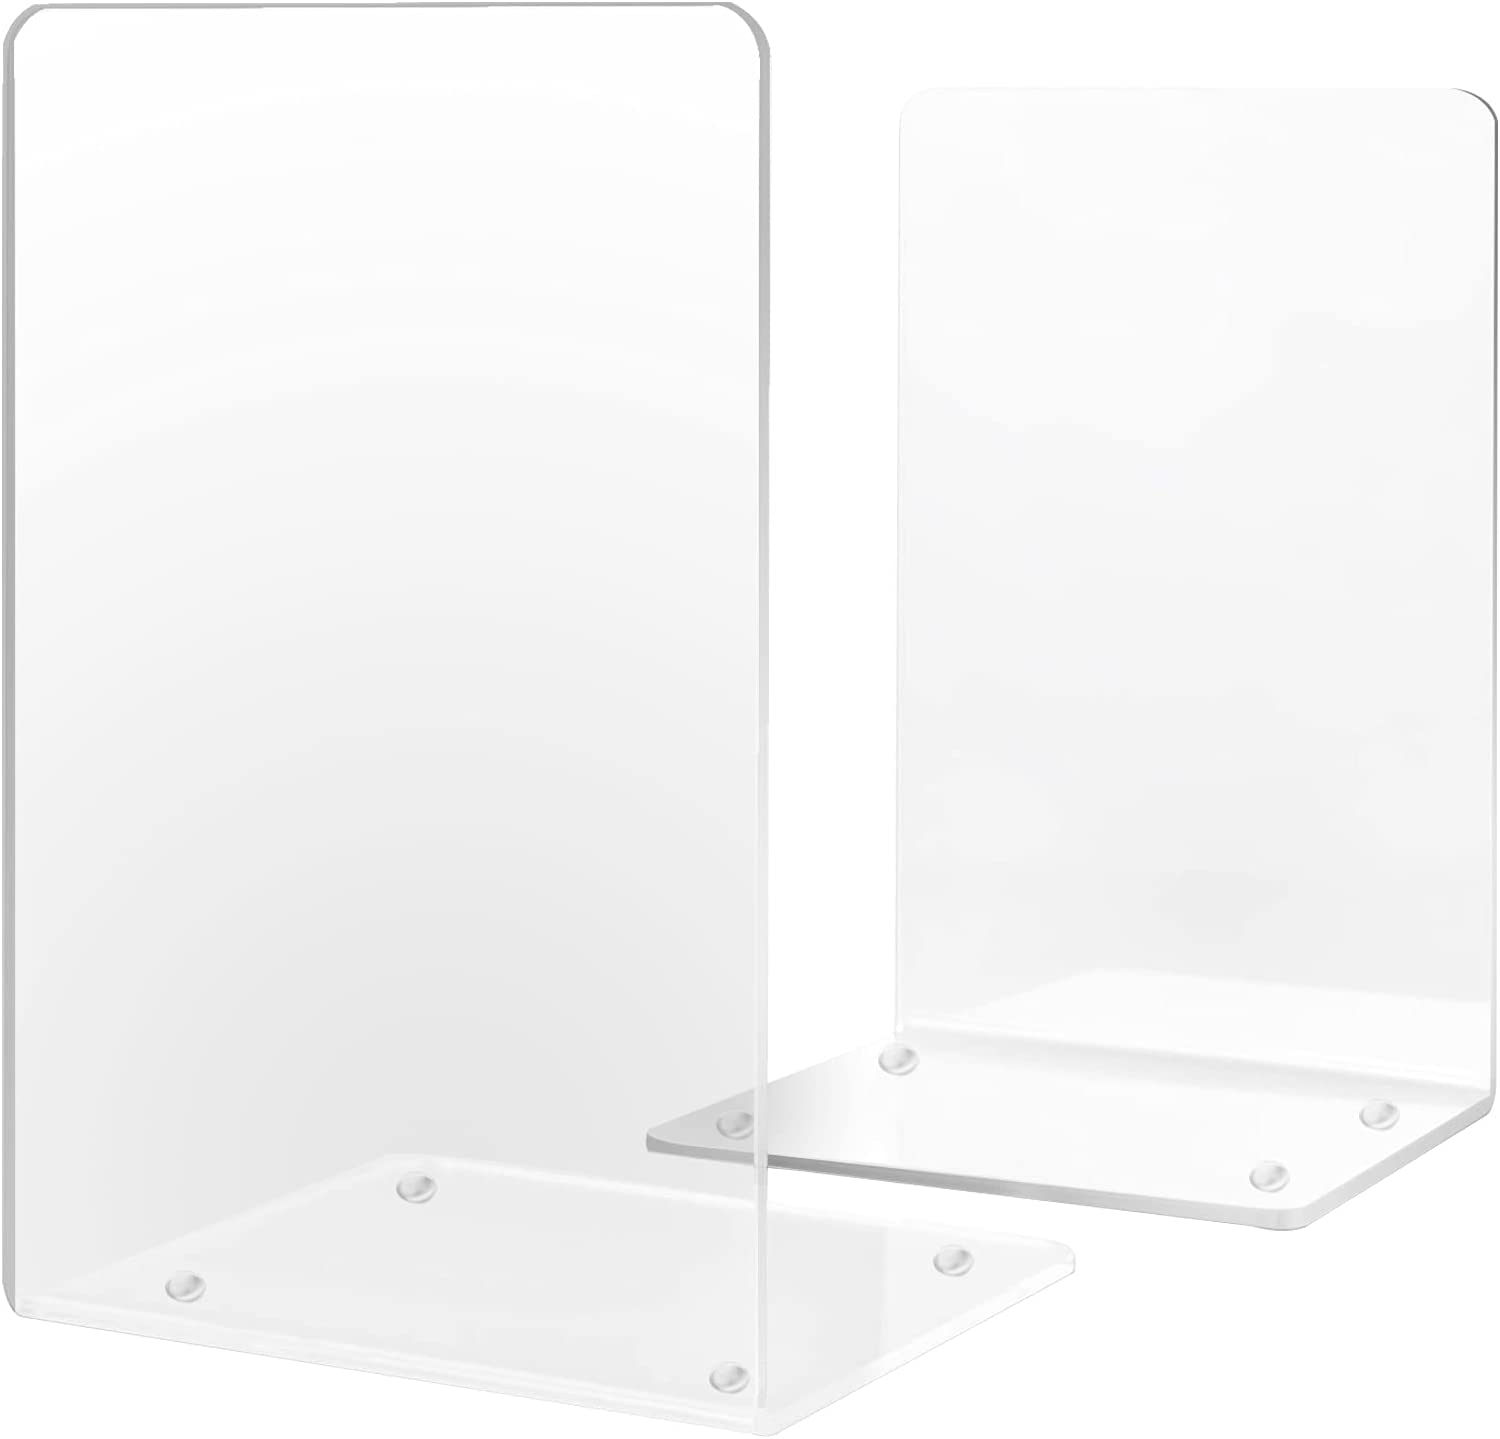 Acrylic Bookends Gibolin Clear Plastic for Ends Fort Worth Mall wi Book Shelves New sales